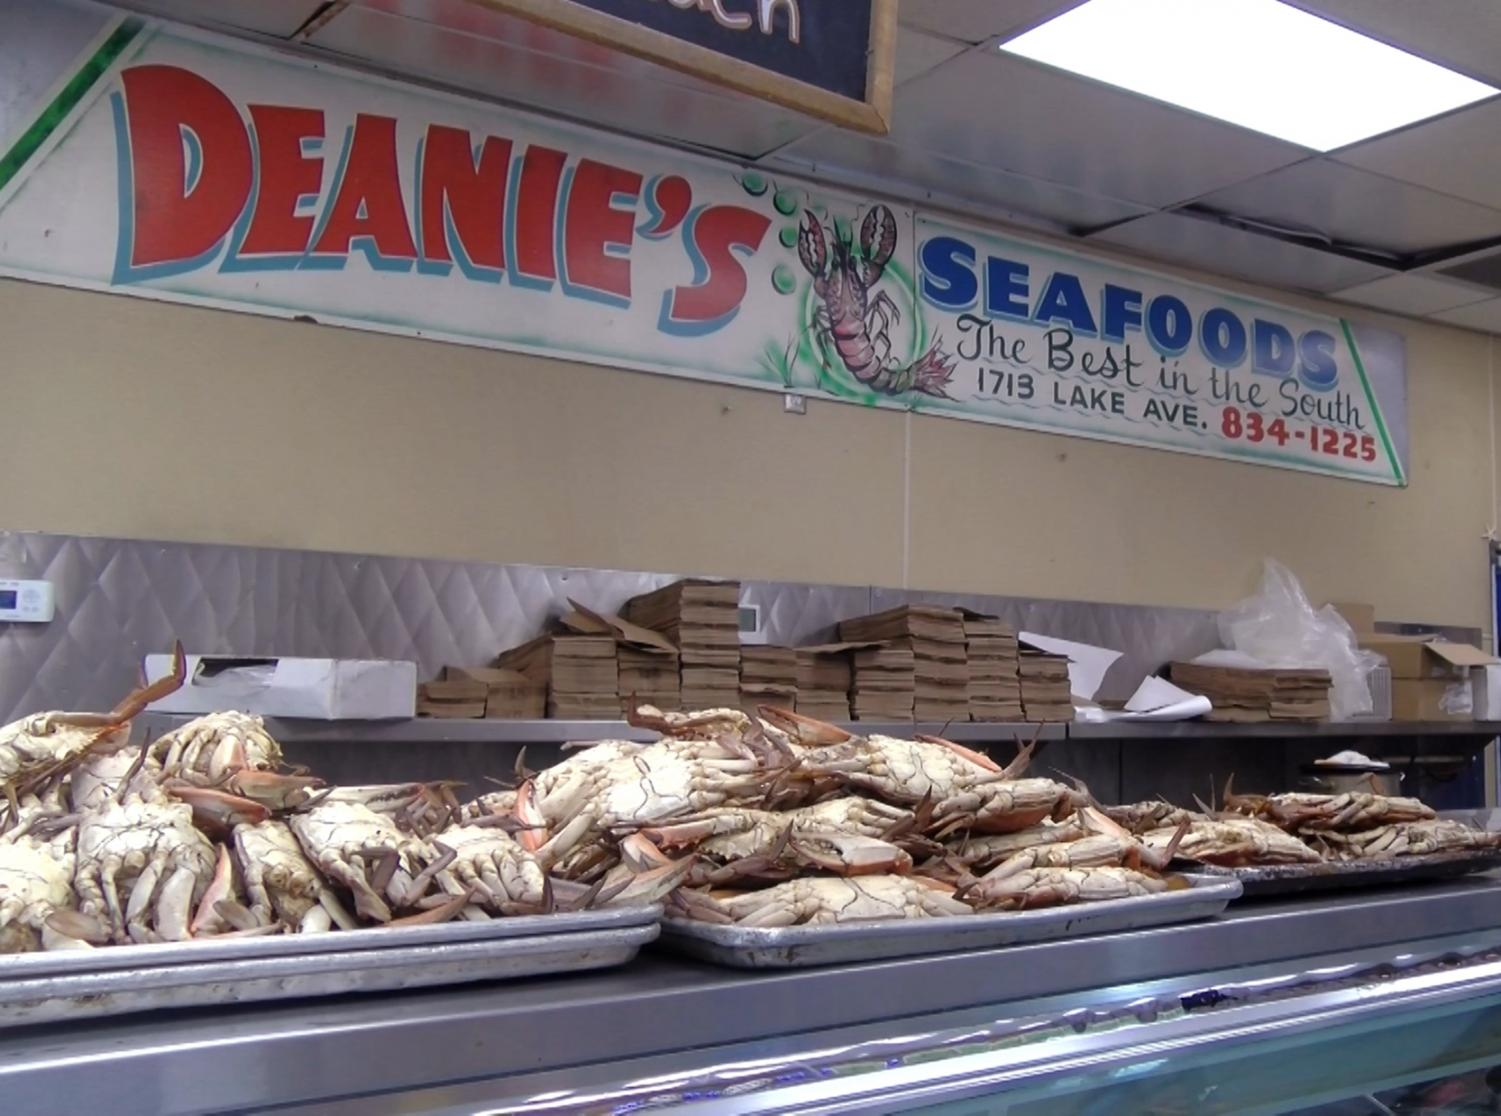 Trays of crabs sit on the counter of Deanie's Seafood Market. Deanie's was not affected by the new seafood bill due to selling local shrimp and crawfish. Photo credit: Cody Downey